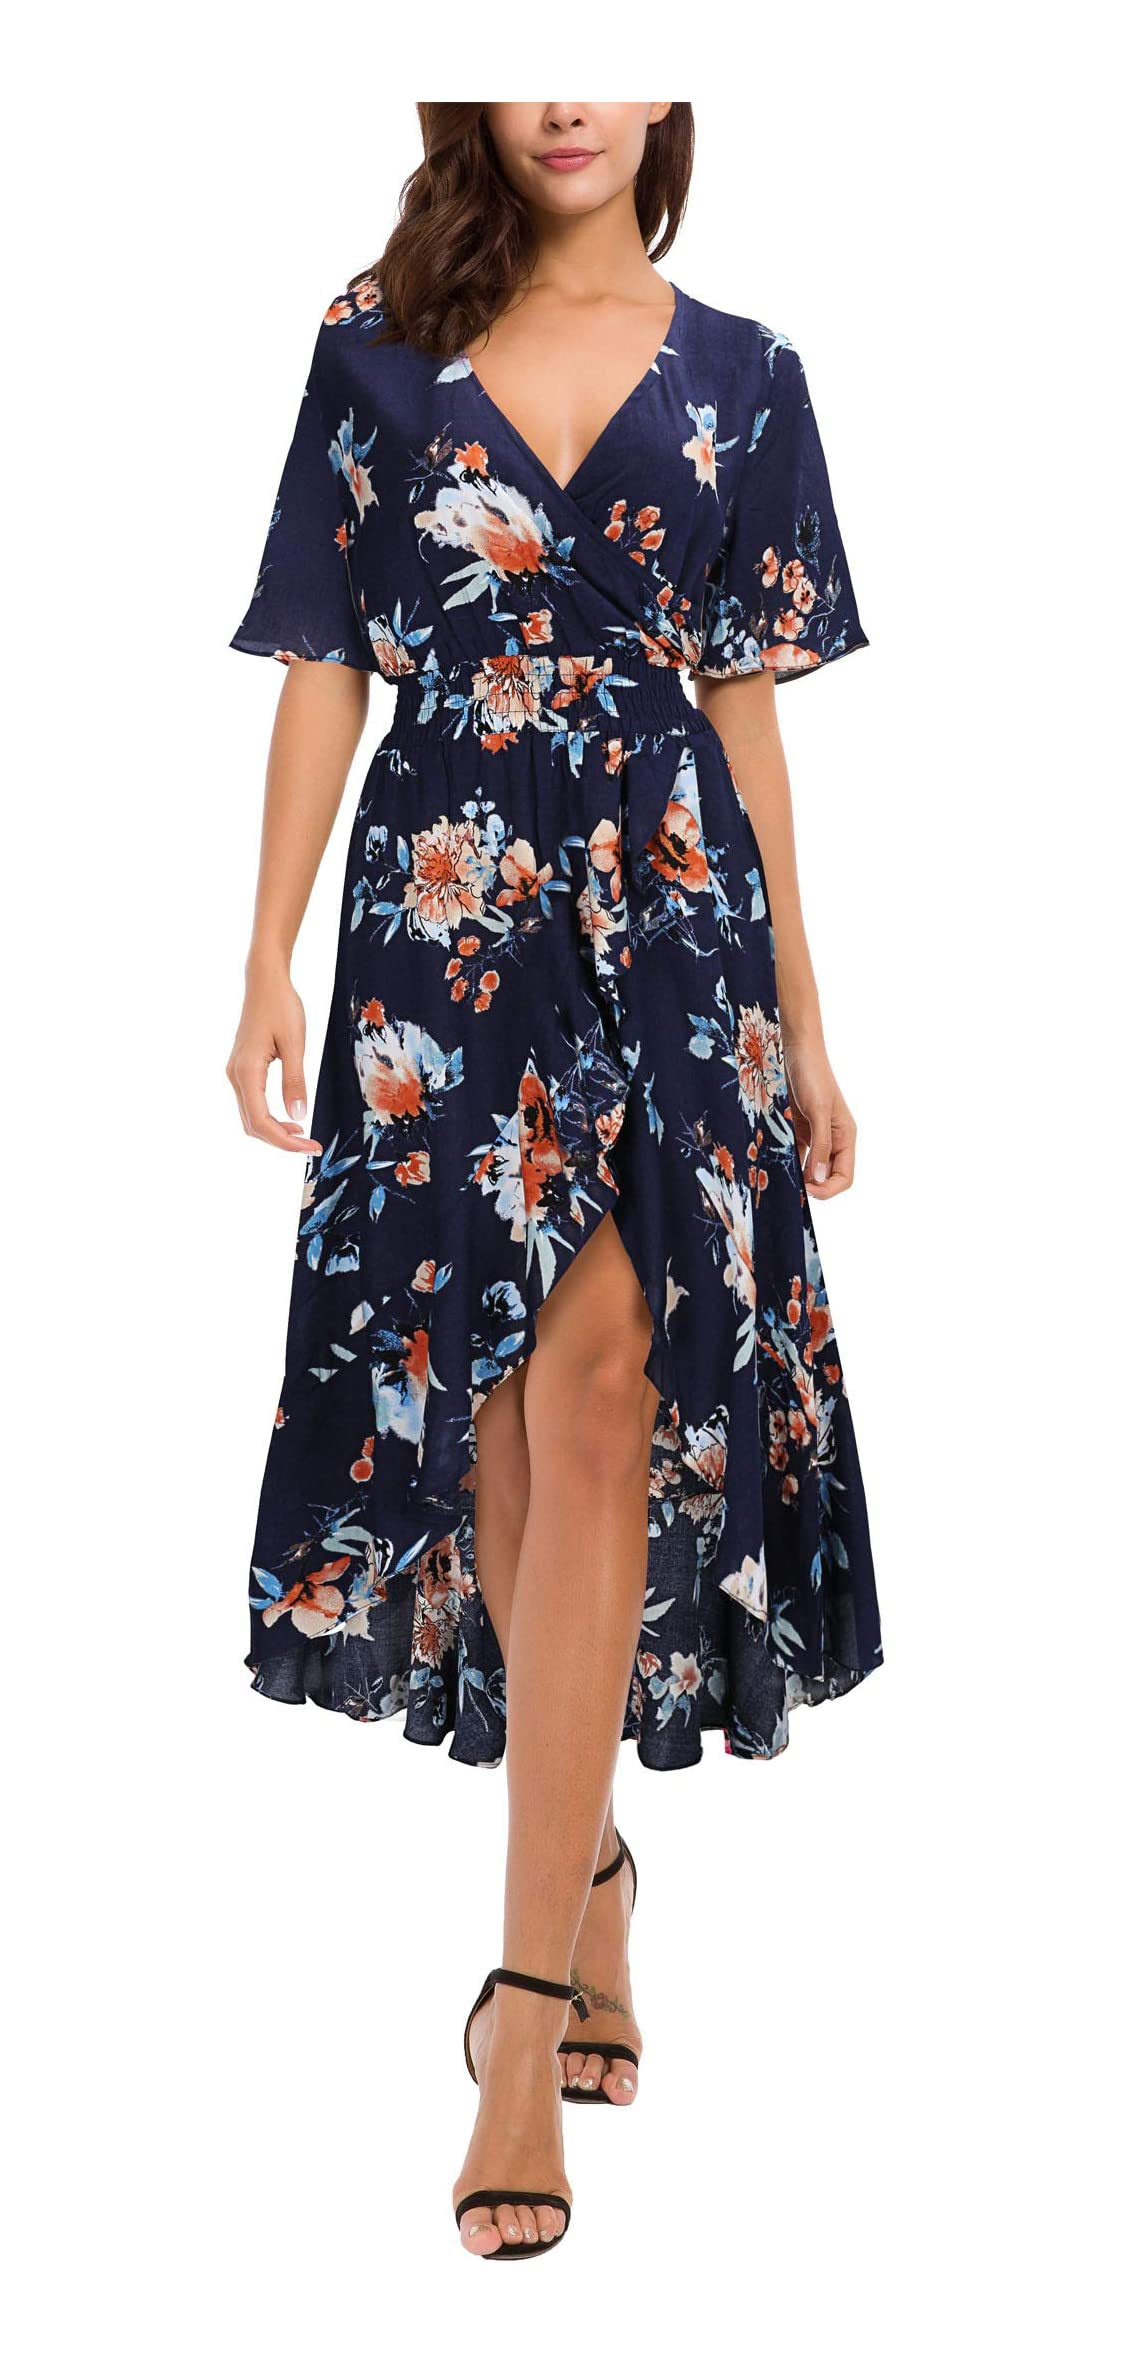 Womens Short Sleeve Floral High Low V-neck Flowy Party